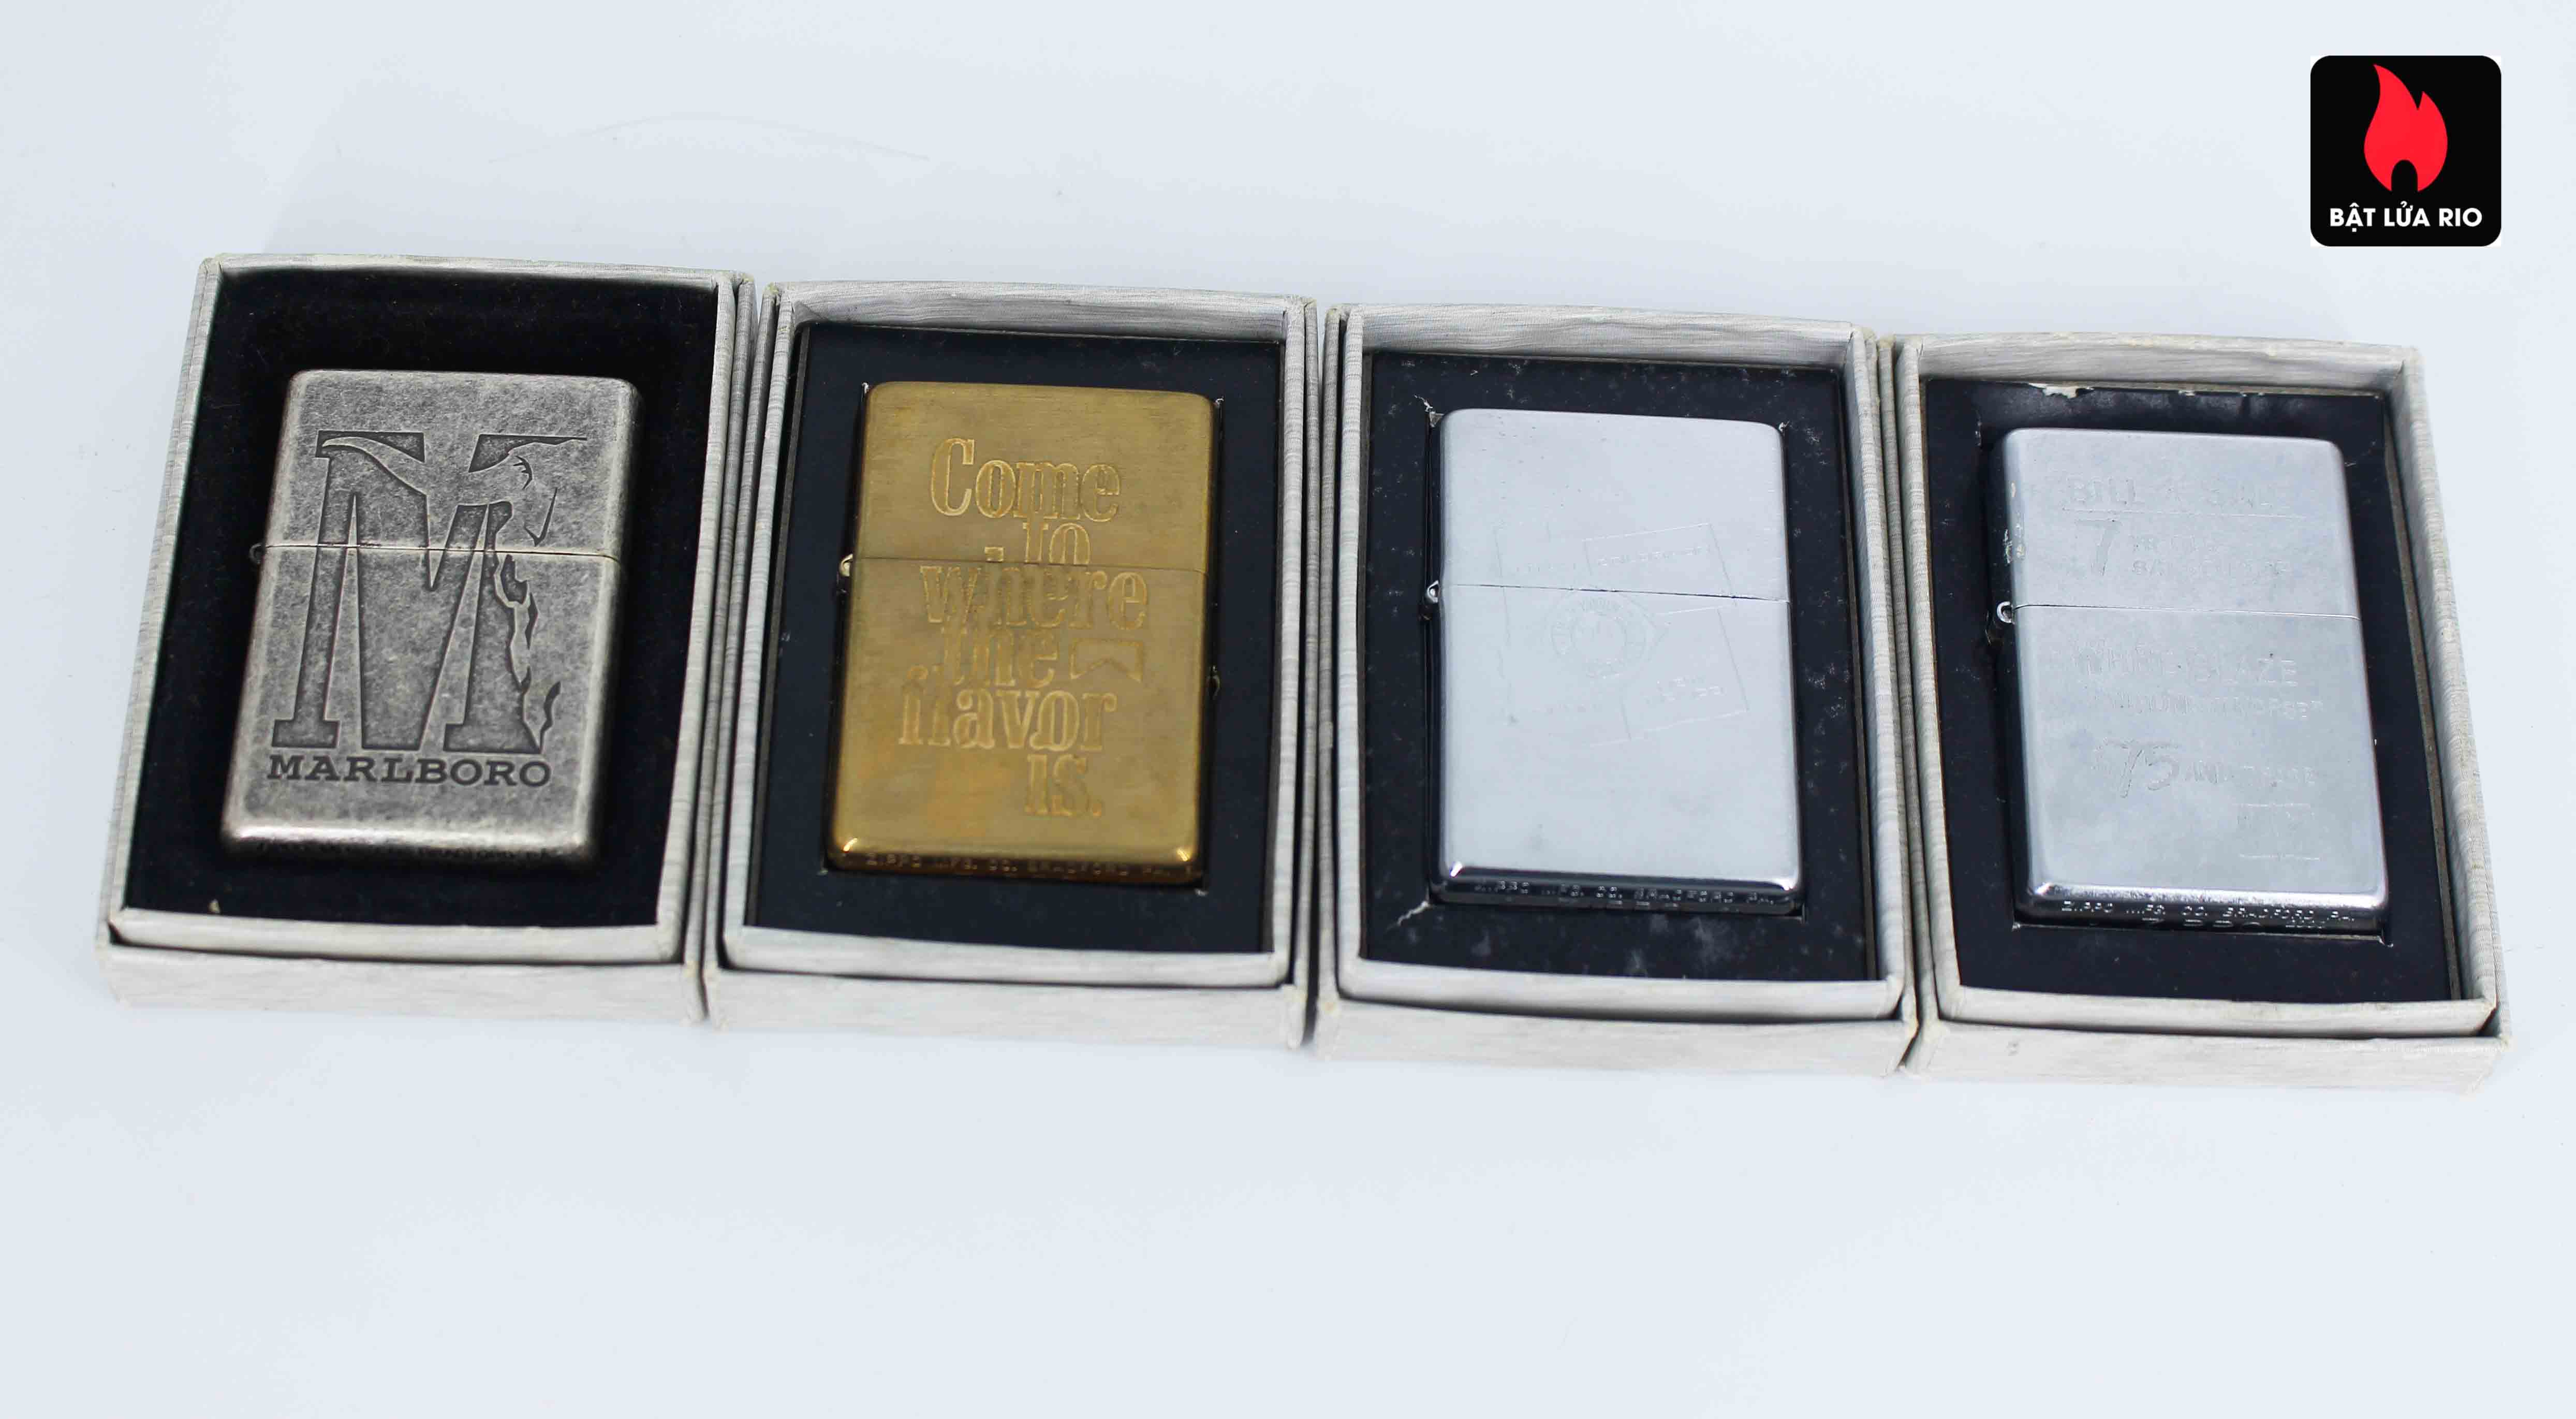 Zippo Set - Zippo 2000-2001 - Marlboro collection Limited Edition 1